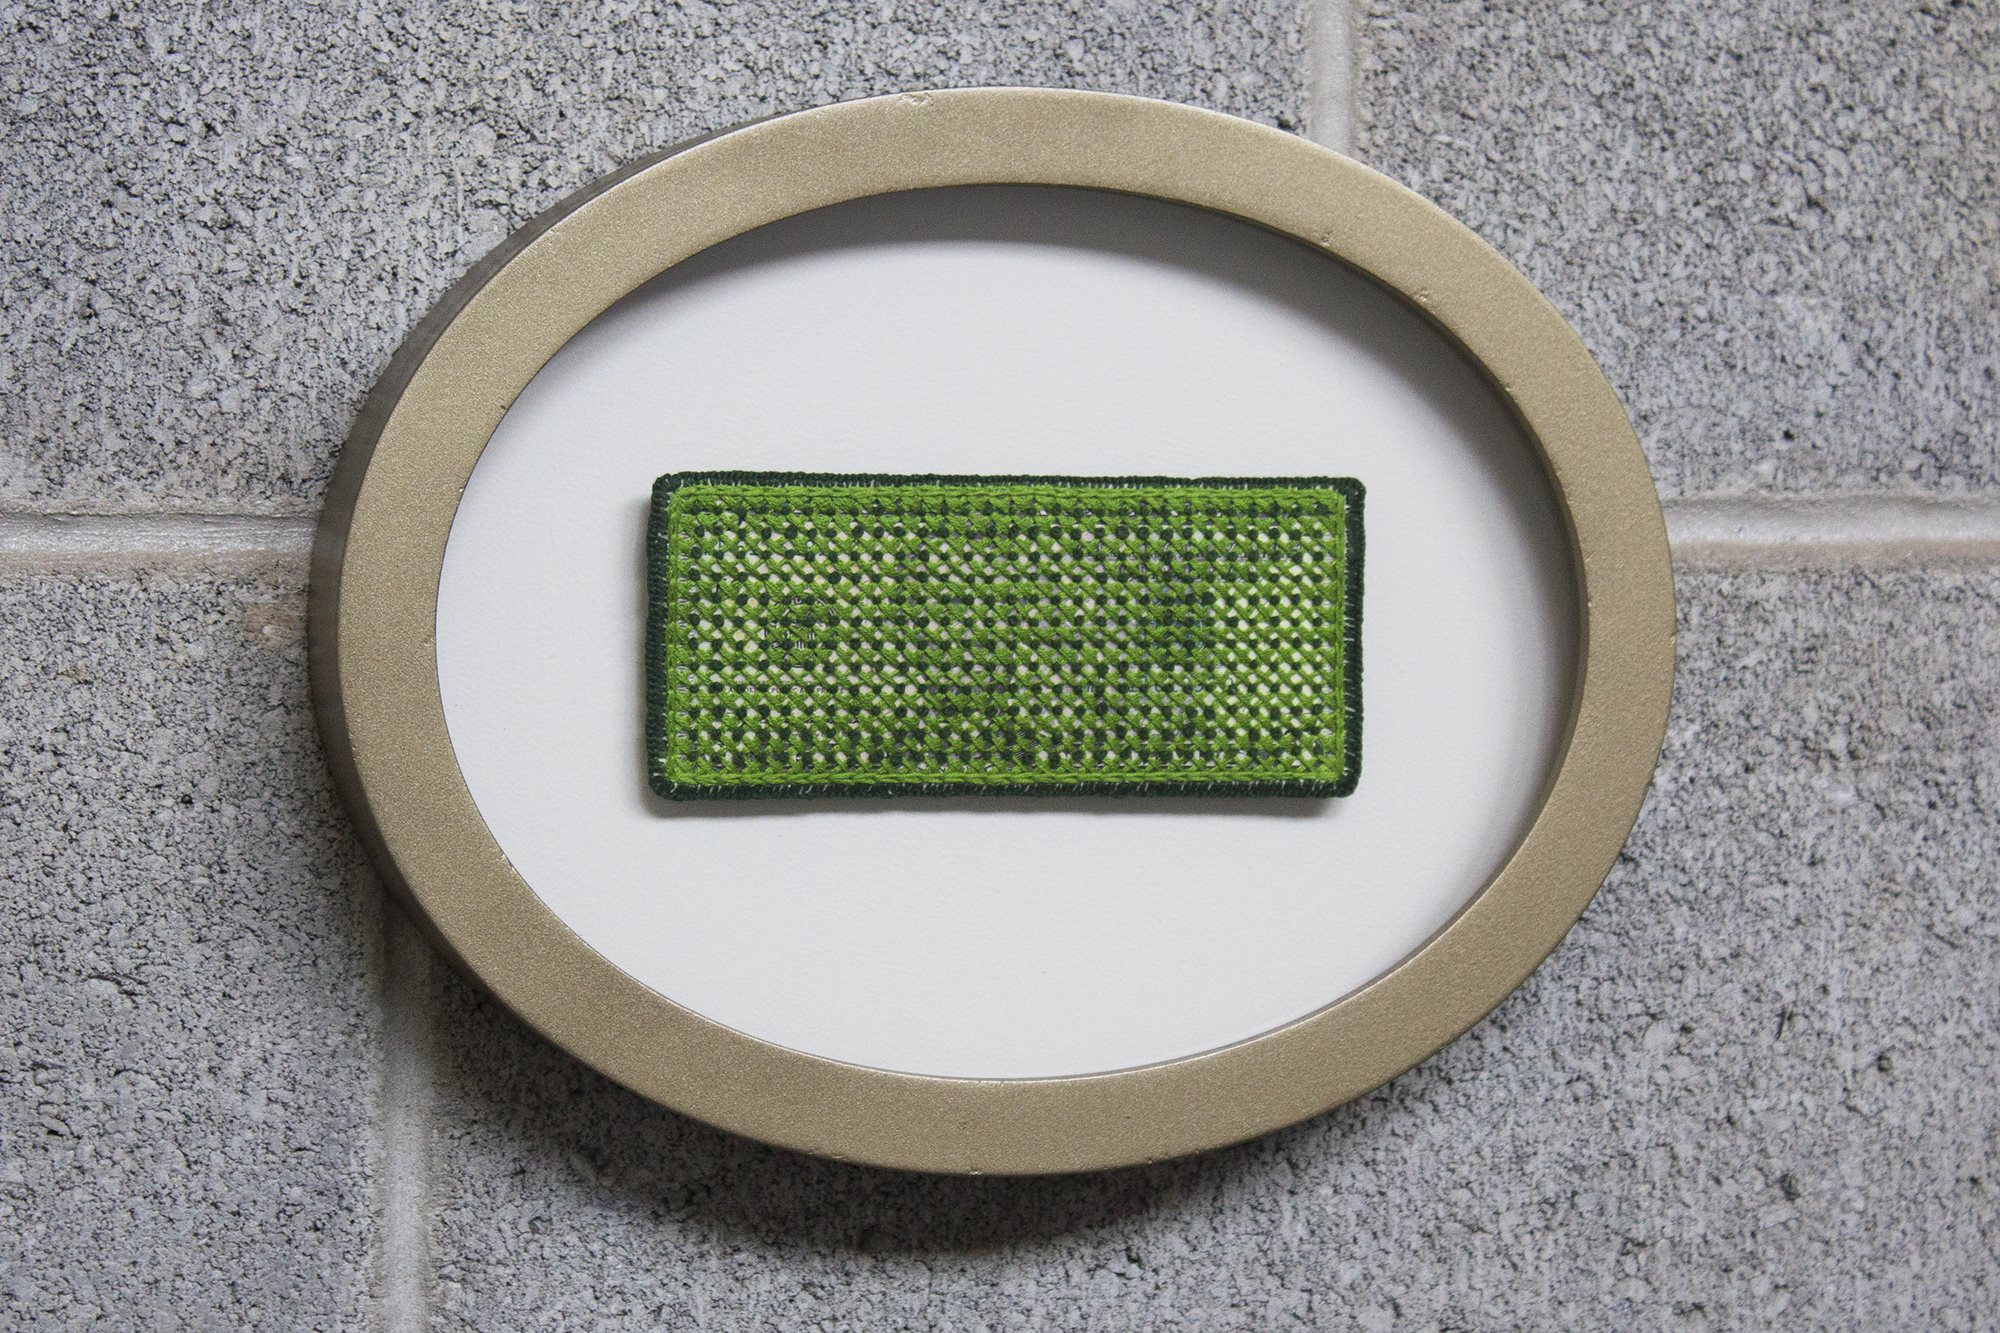 Stacey Lee Webber. Embroidered Bills: Green French Knots, 2018. Five dollar bill, thread, canvas, custom wood frame. 9 x 7 x 2 in.